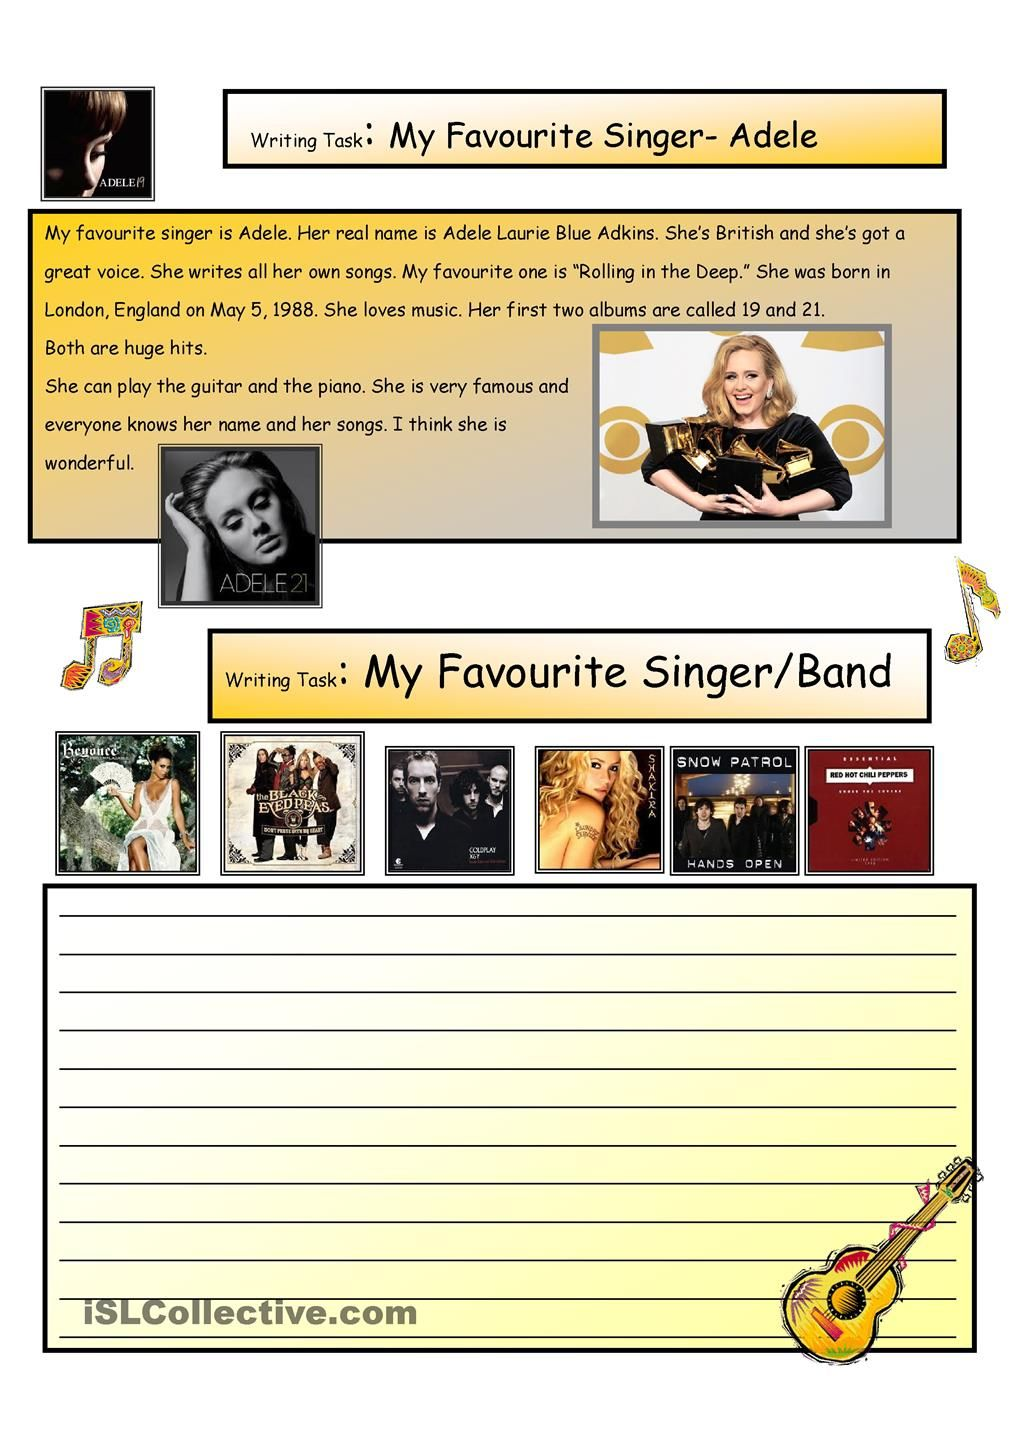 Creative Writing My Favorite Singer 8 A1 Level Creative Writing Singer Writing [ 1440 x 1018 Pixel ]